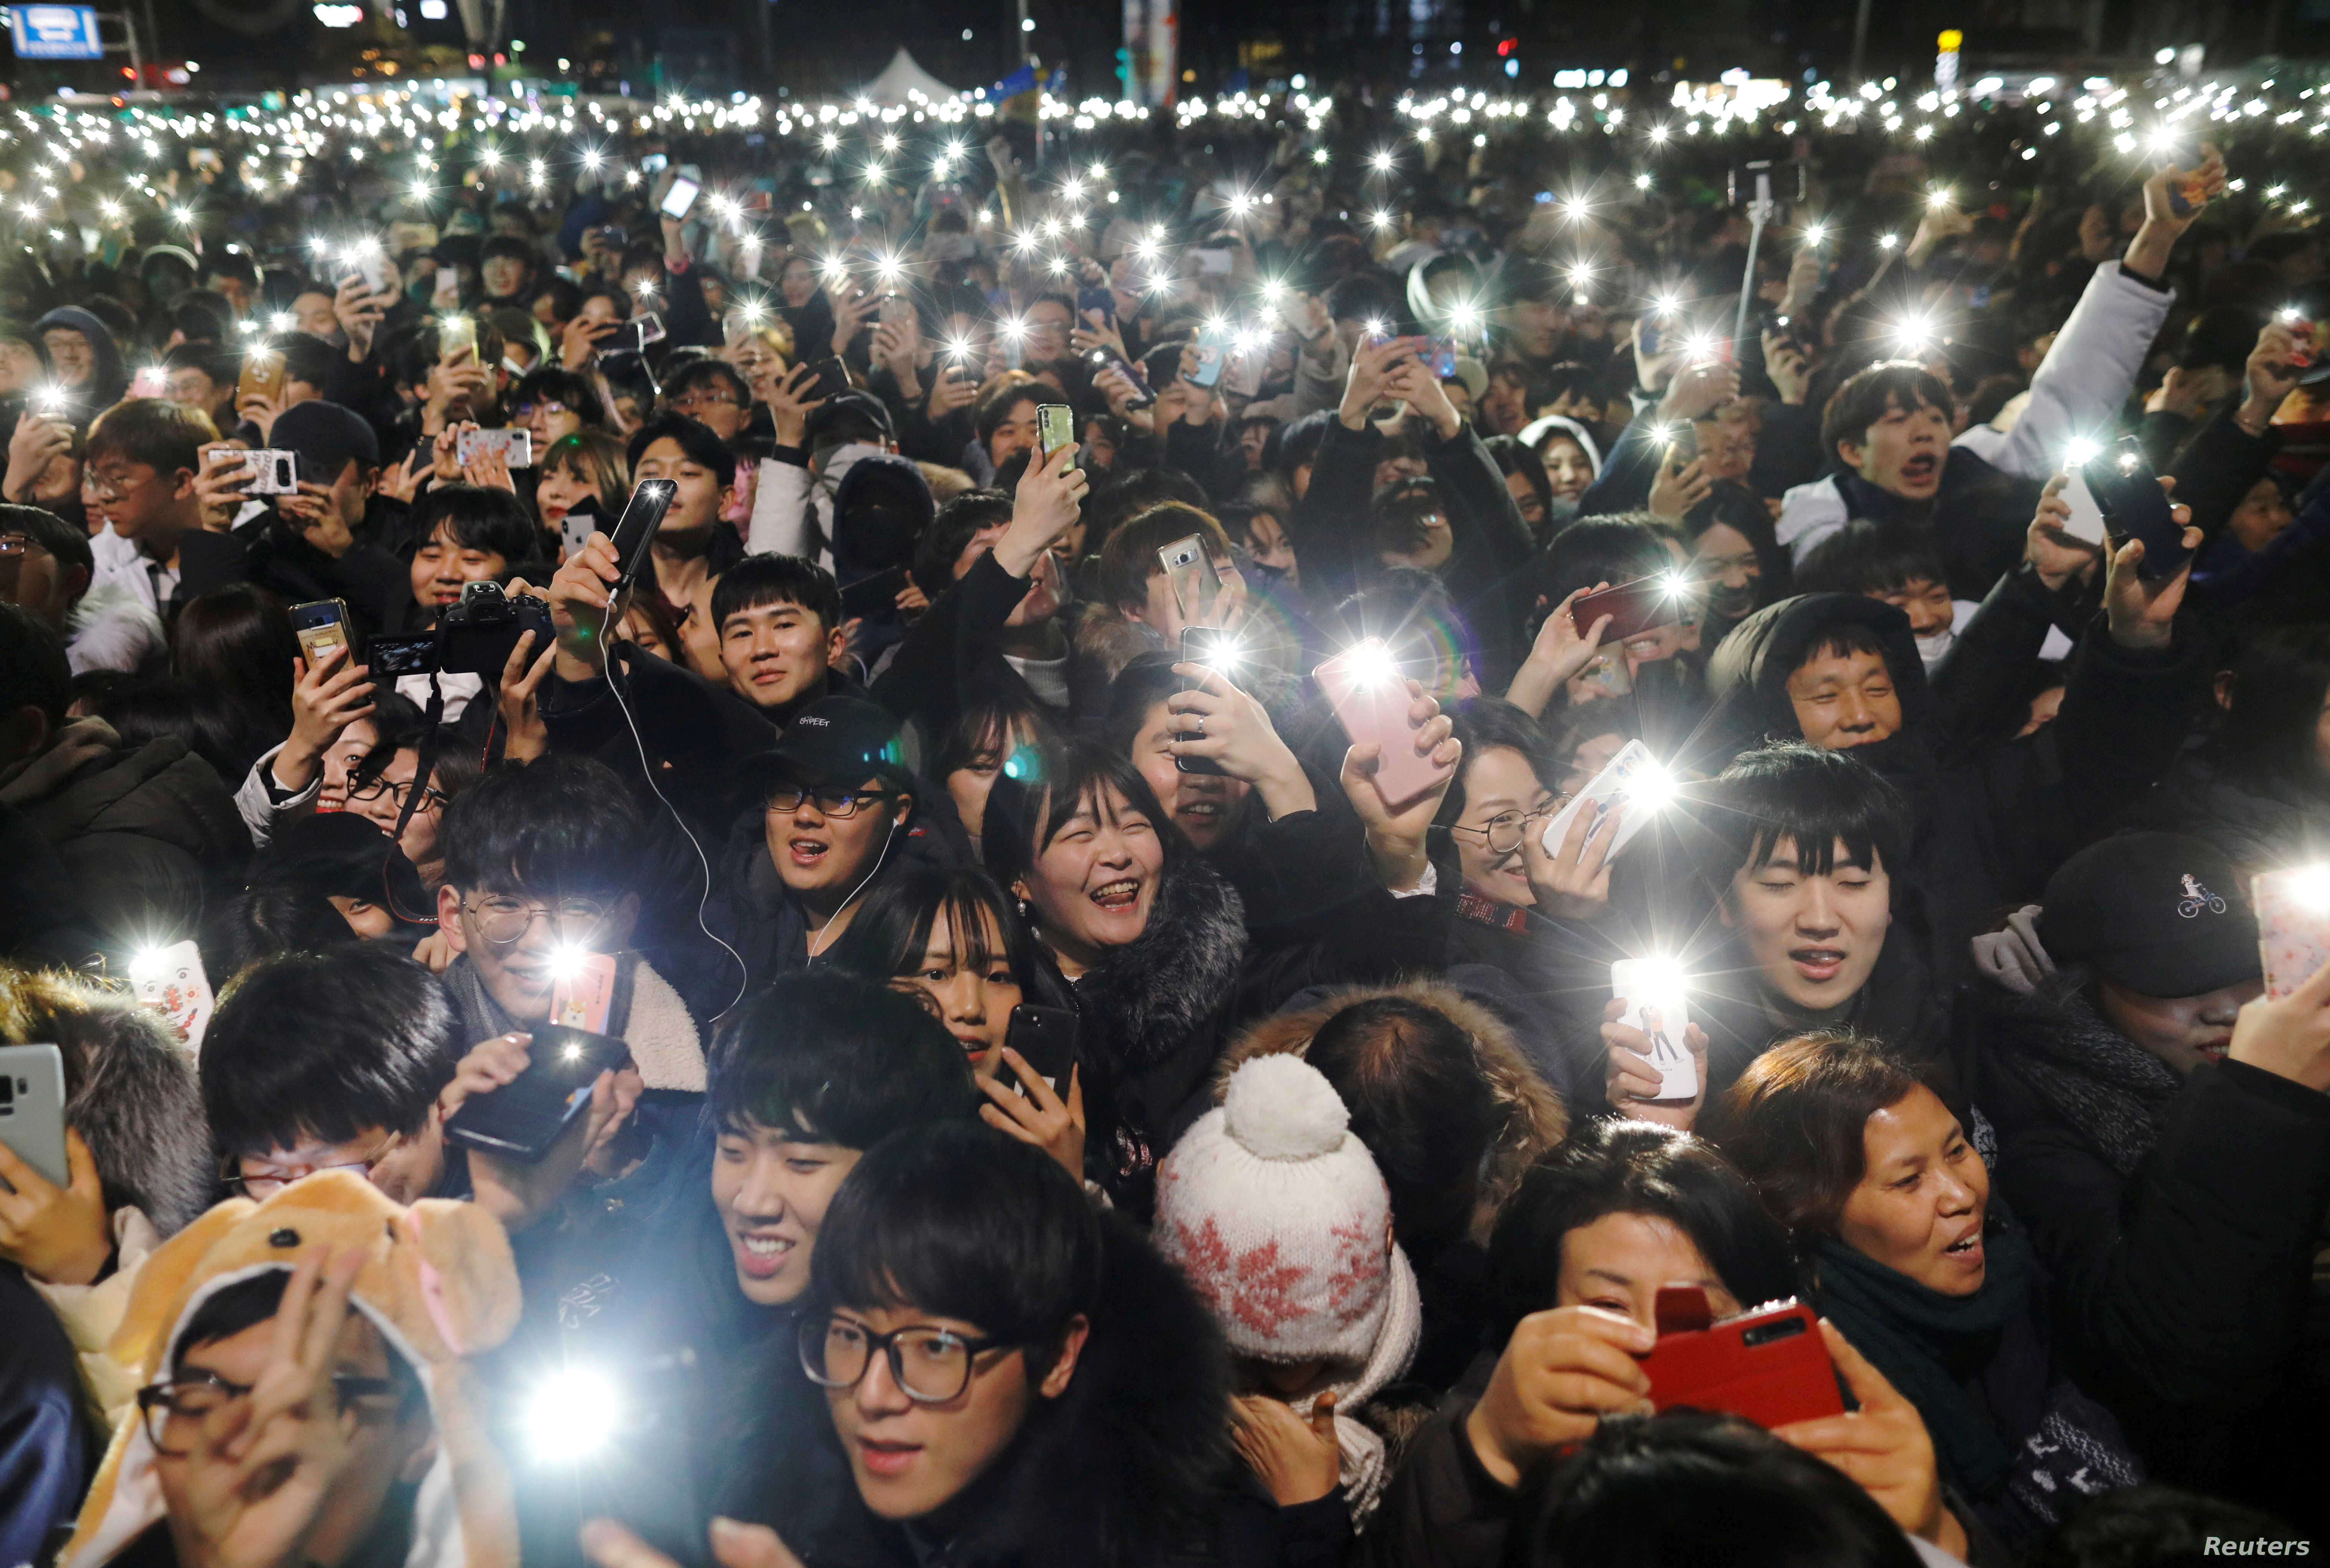 People attend a ceremony to celebrate the new year in Seoul, South Korea, Jan. 1, 2019.